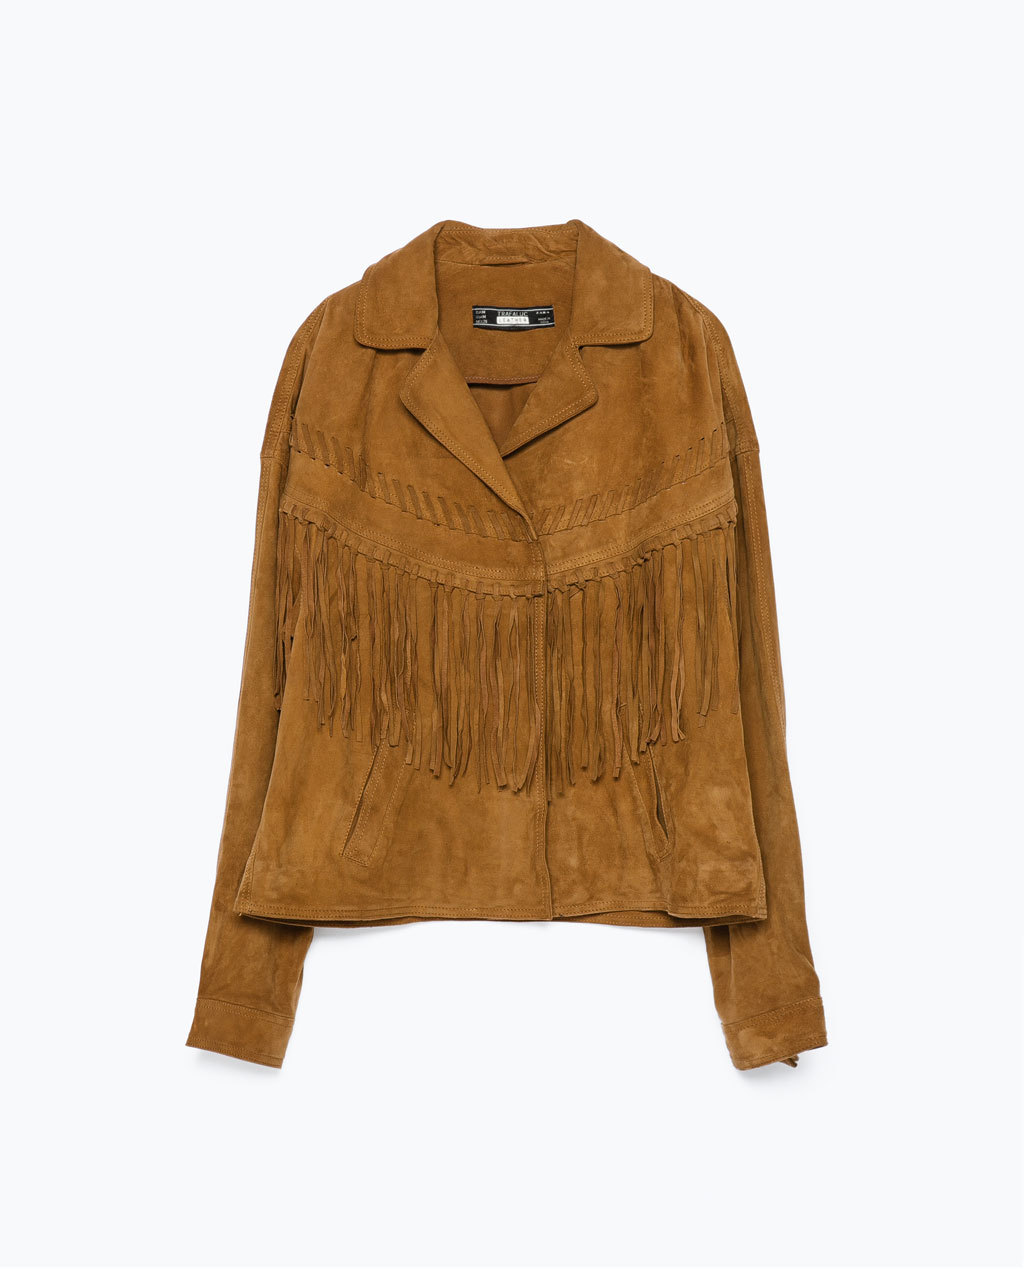 Fringed Suede Jacket - pattern: plain; style: single breasted blazer; collar: standard lapel/rever collar; predominant colour: tan; occasions: casual; length: standard; fit: straight cut (boxy); fibres: leather - 100%; sleeve length: long sleeve; sleeve style: standard; collar break: medium; pattern type: fabric; texture group: suede; embellishment: fringing; season: s/s 2015; wardrobe: highlight; embellishment location: bust